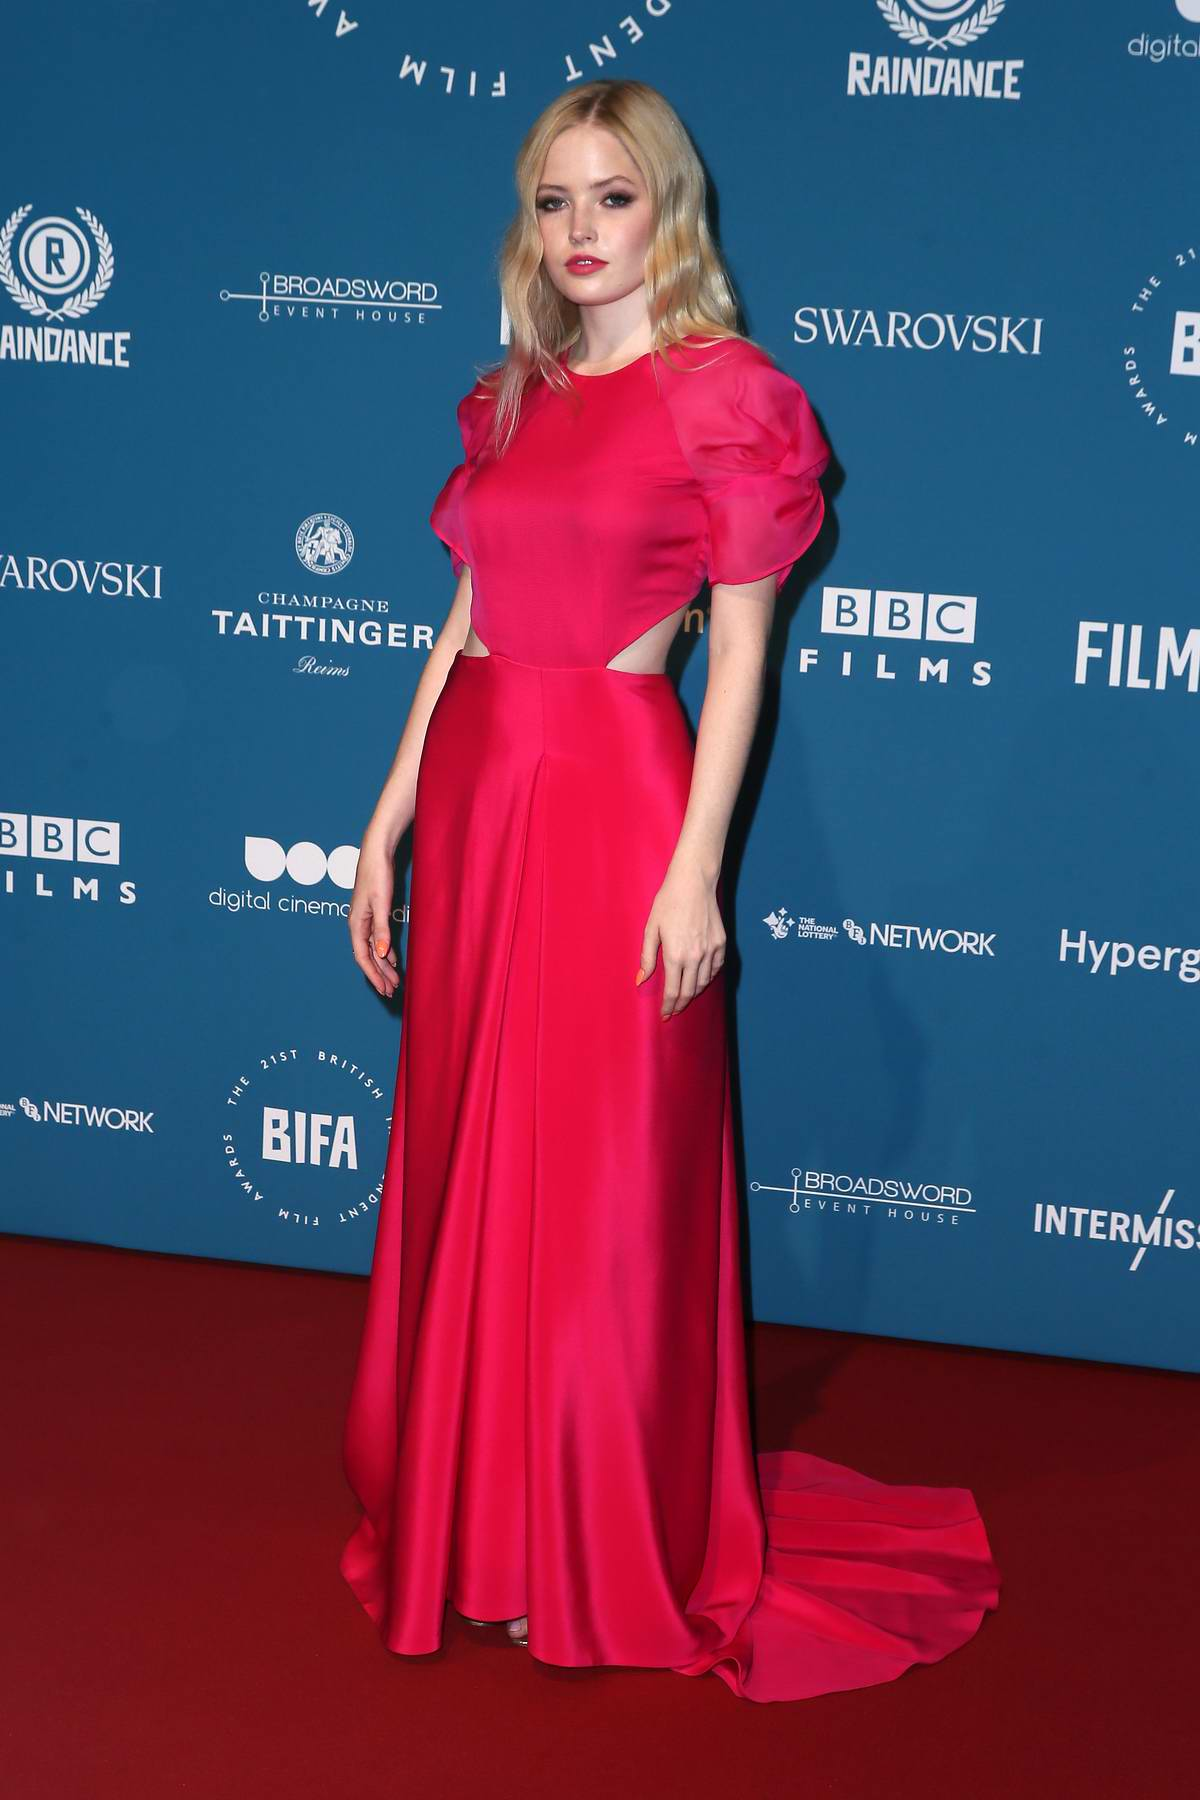 Ellie Bamber attends the 21st British Independent Film Awards (BIFA 2018) in London, UK